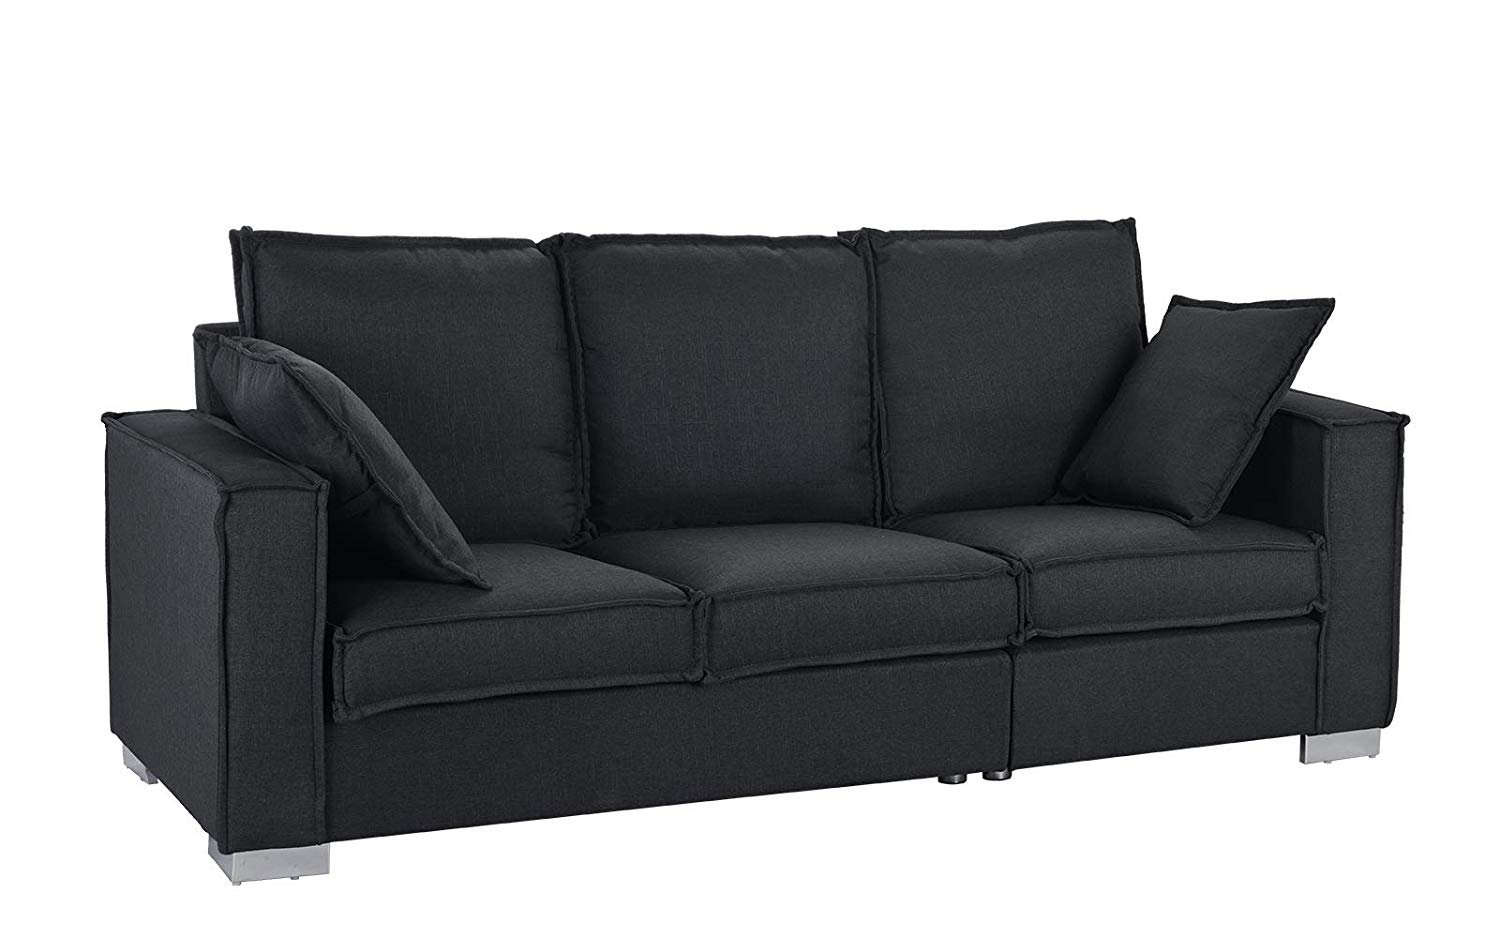 Exceptionnel Classic Linen Fabric Sofa, Living Room Couch (Black)